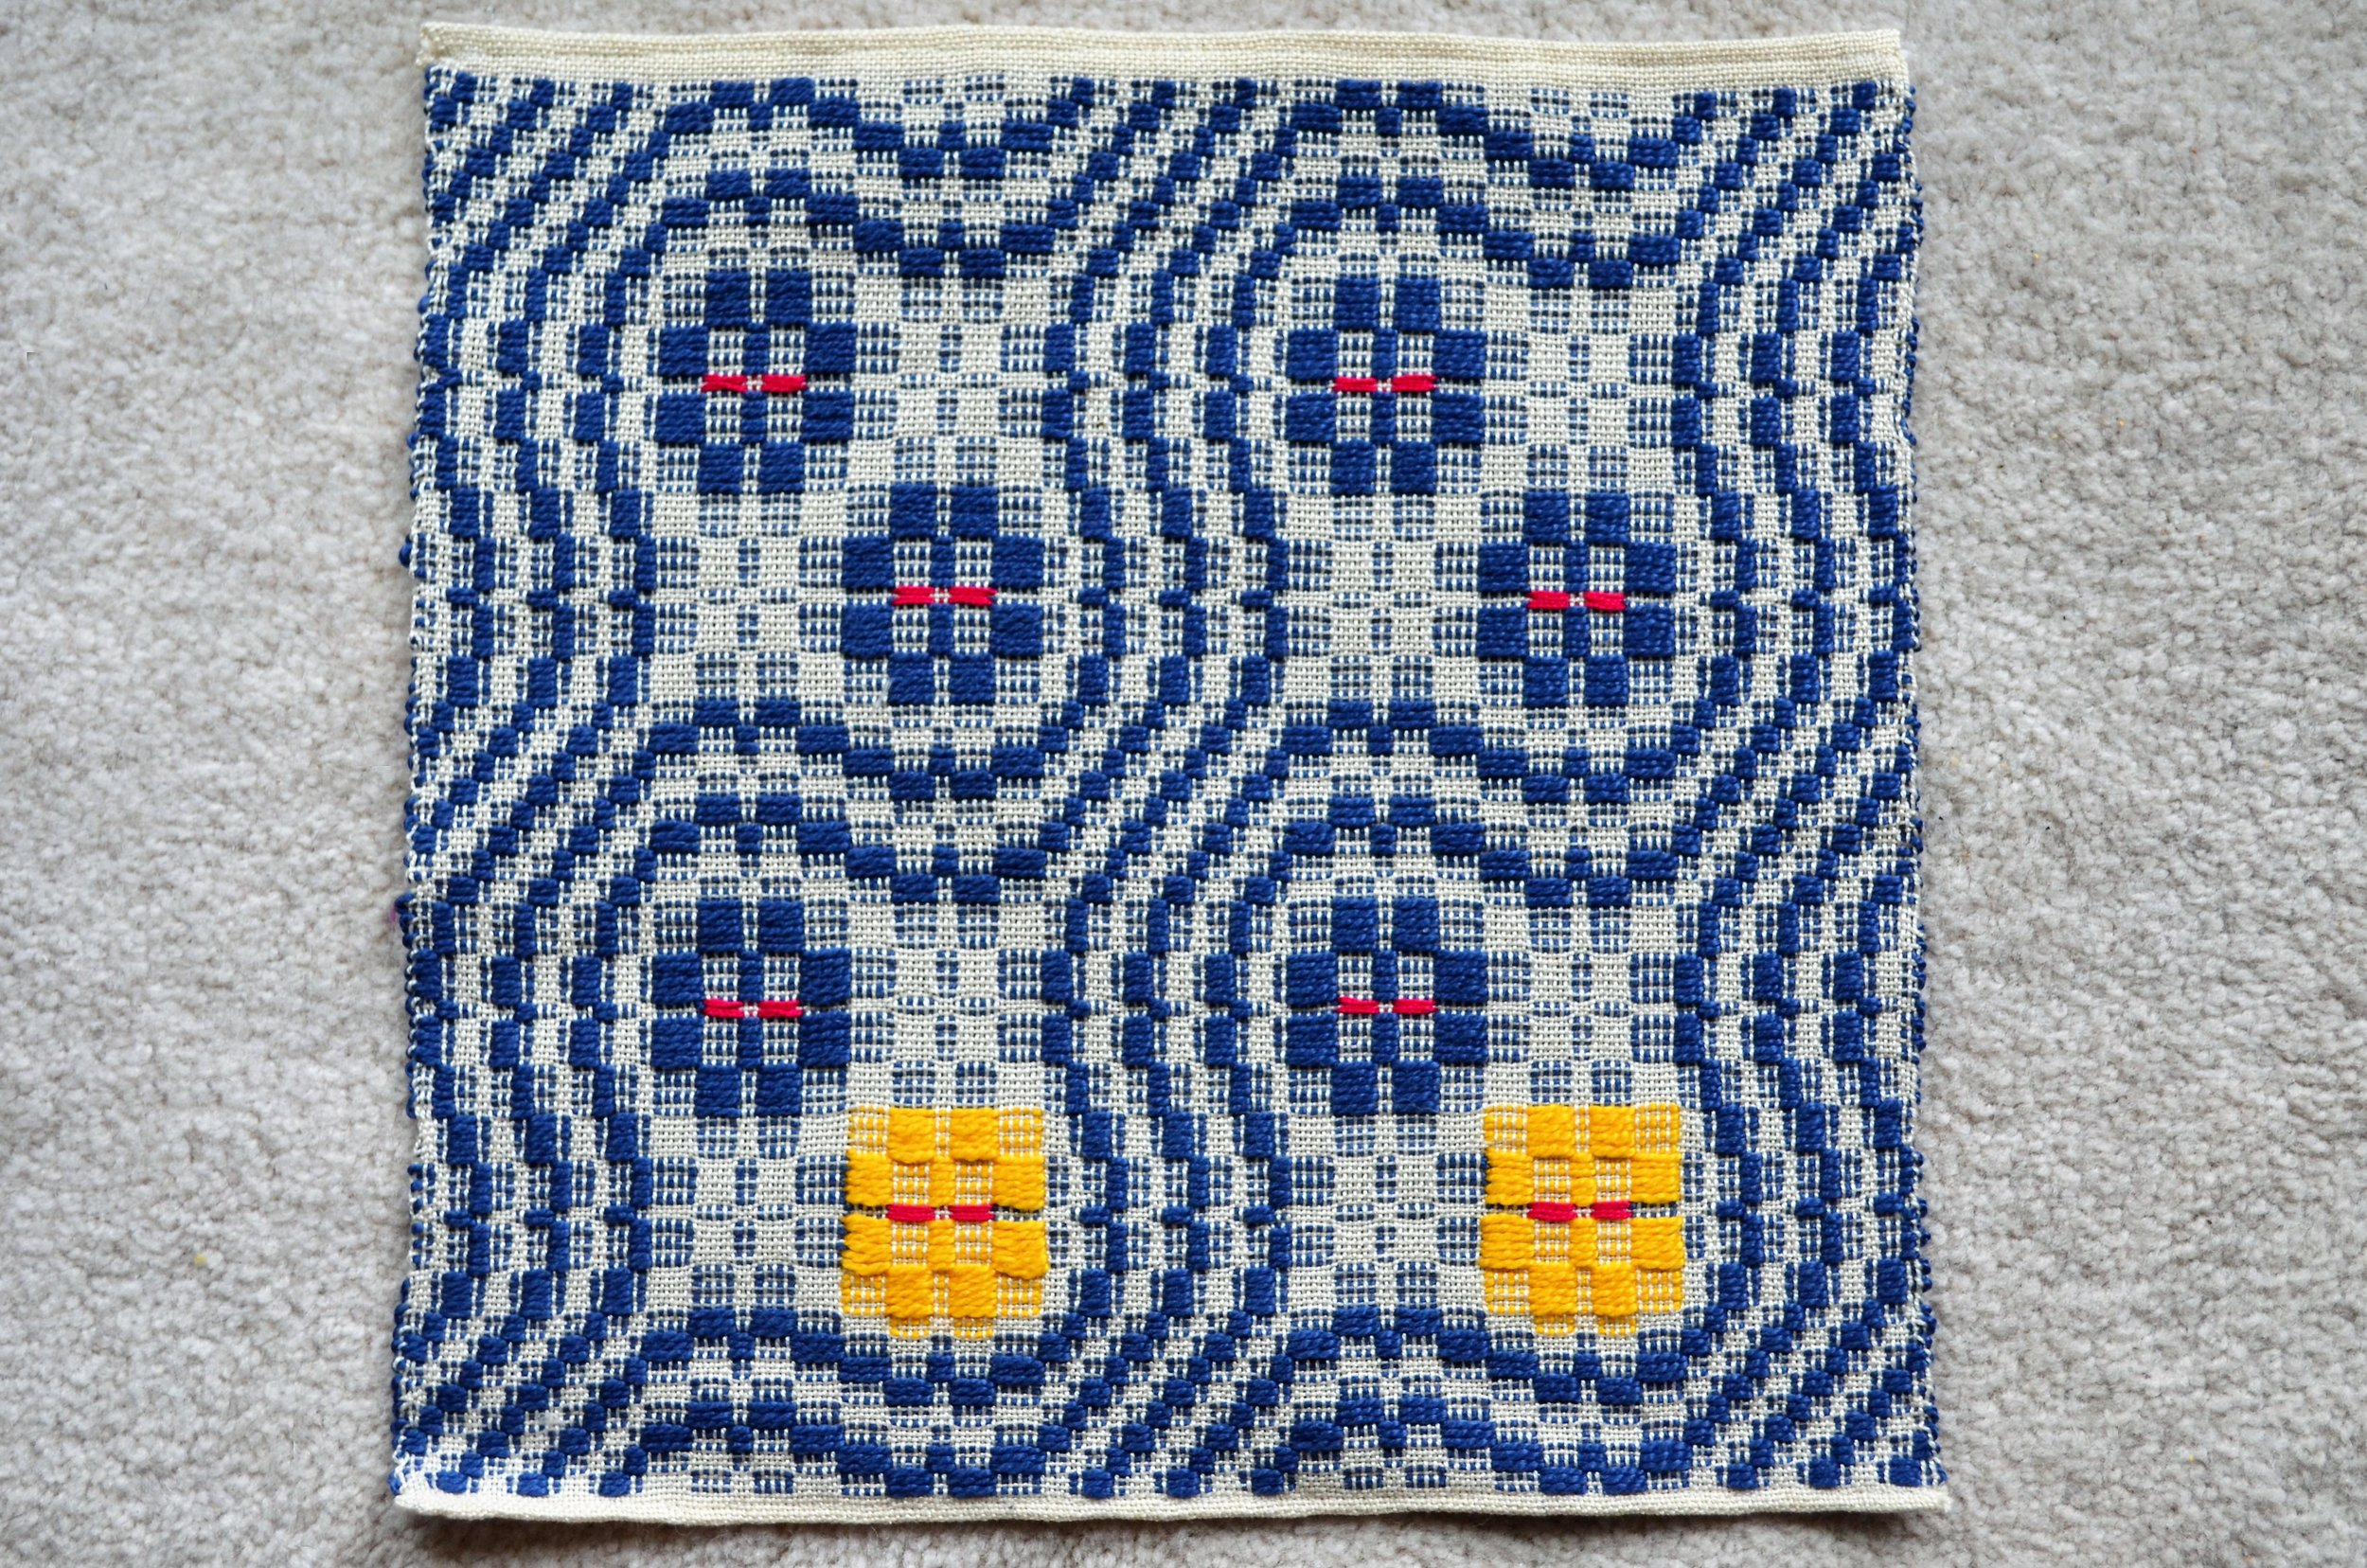 Snail Trail with Yellow Flower weaving / warporweft.com